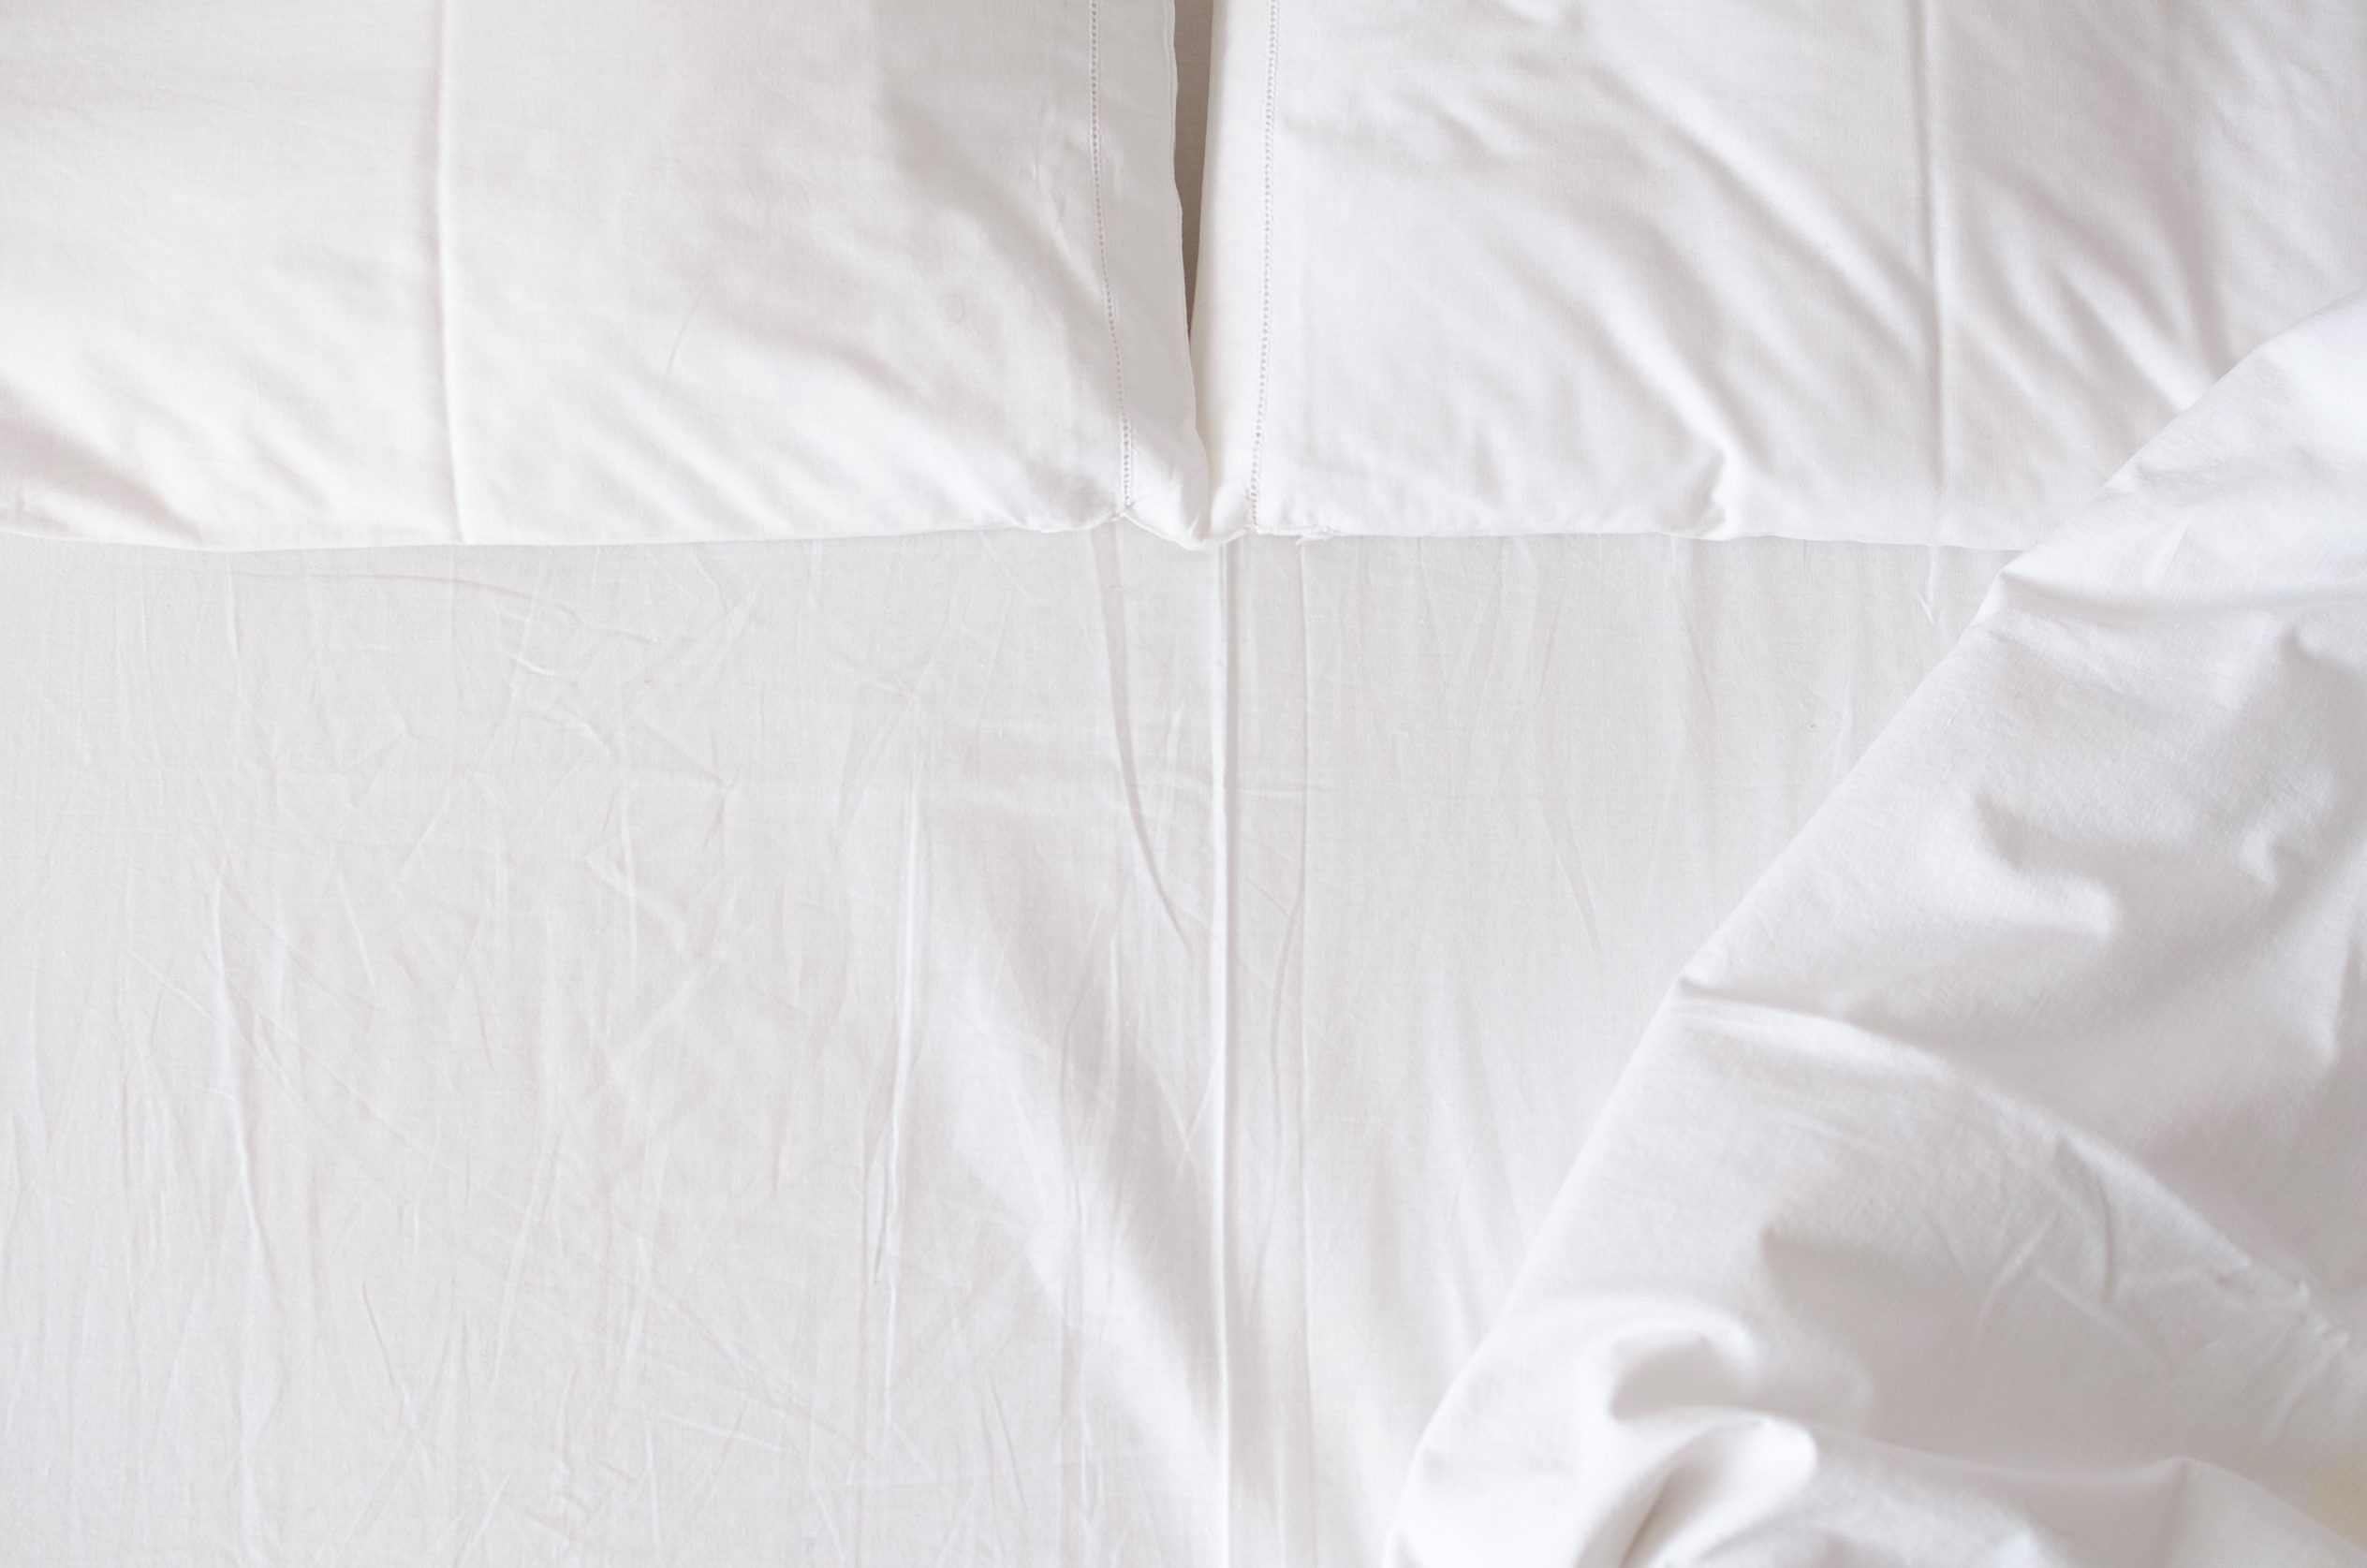 White bedding sheet, blanket and pillows in the hotel room. Rest, sleeping, comfort concept. Top view. Copy space.